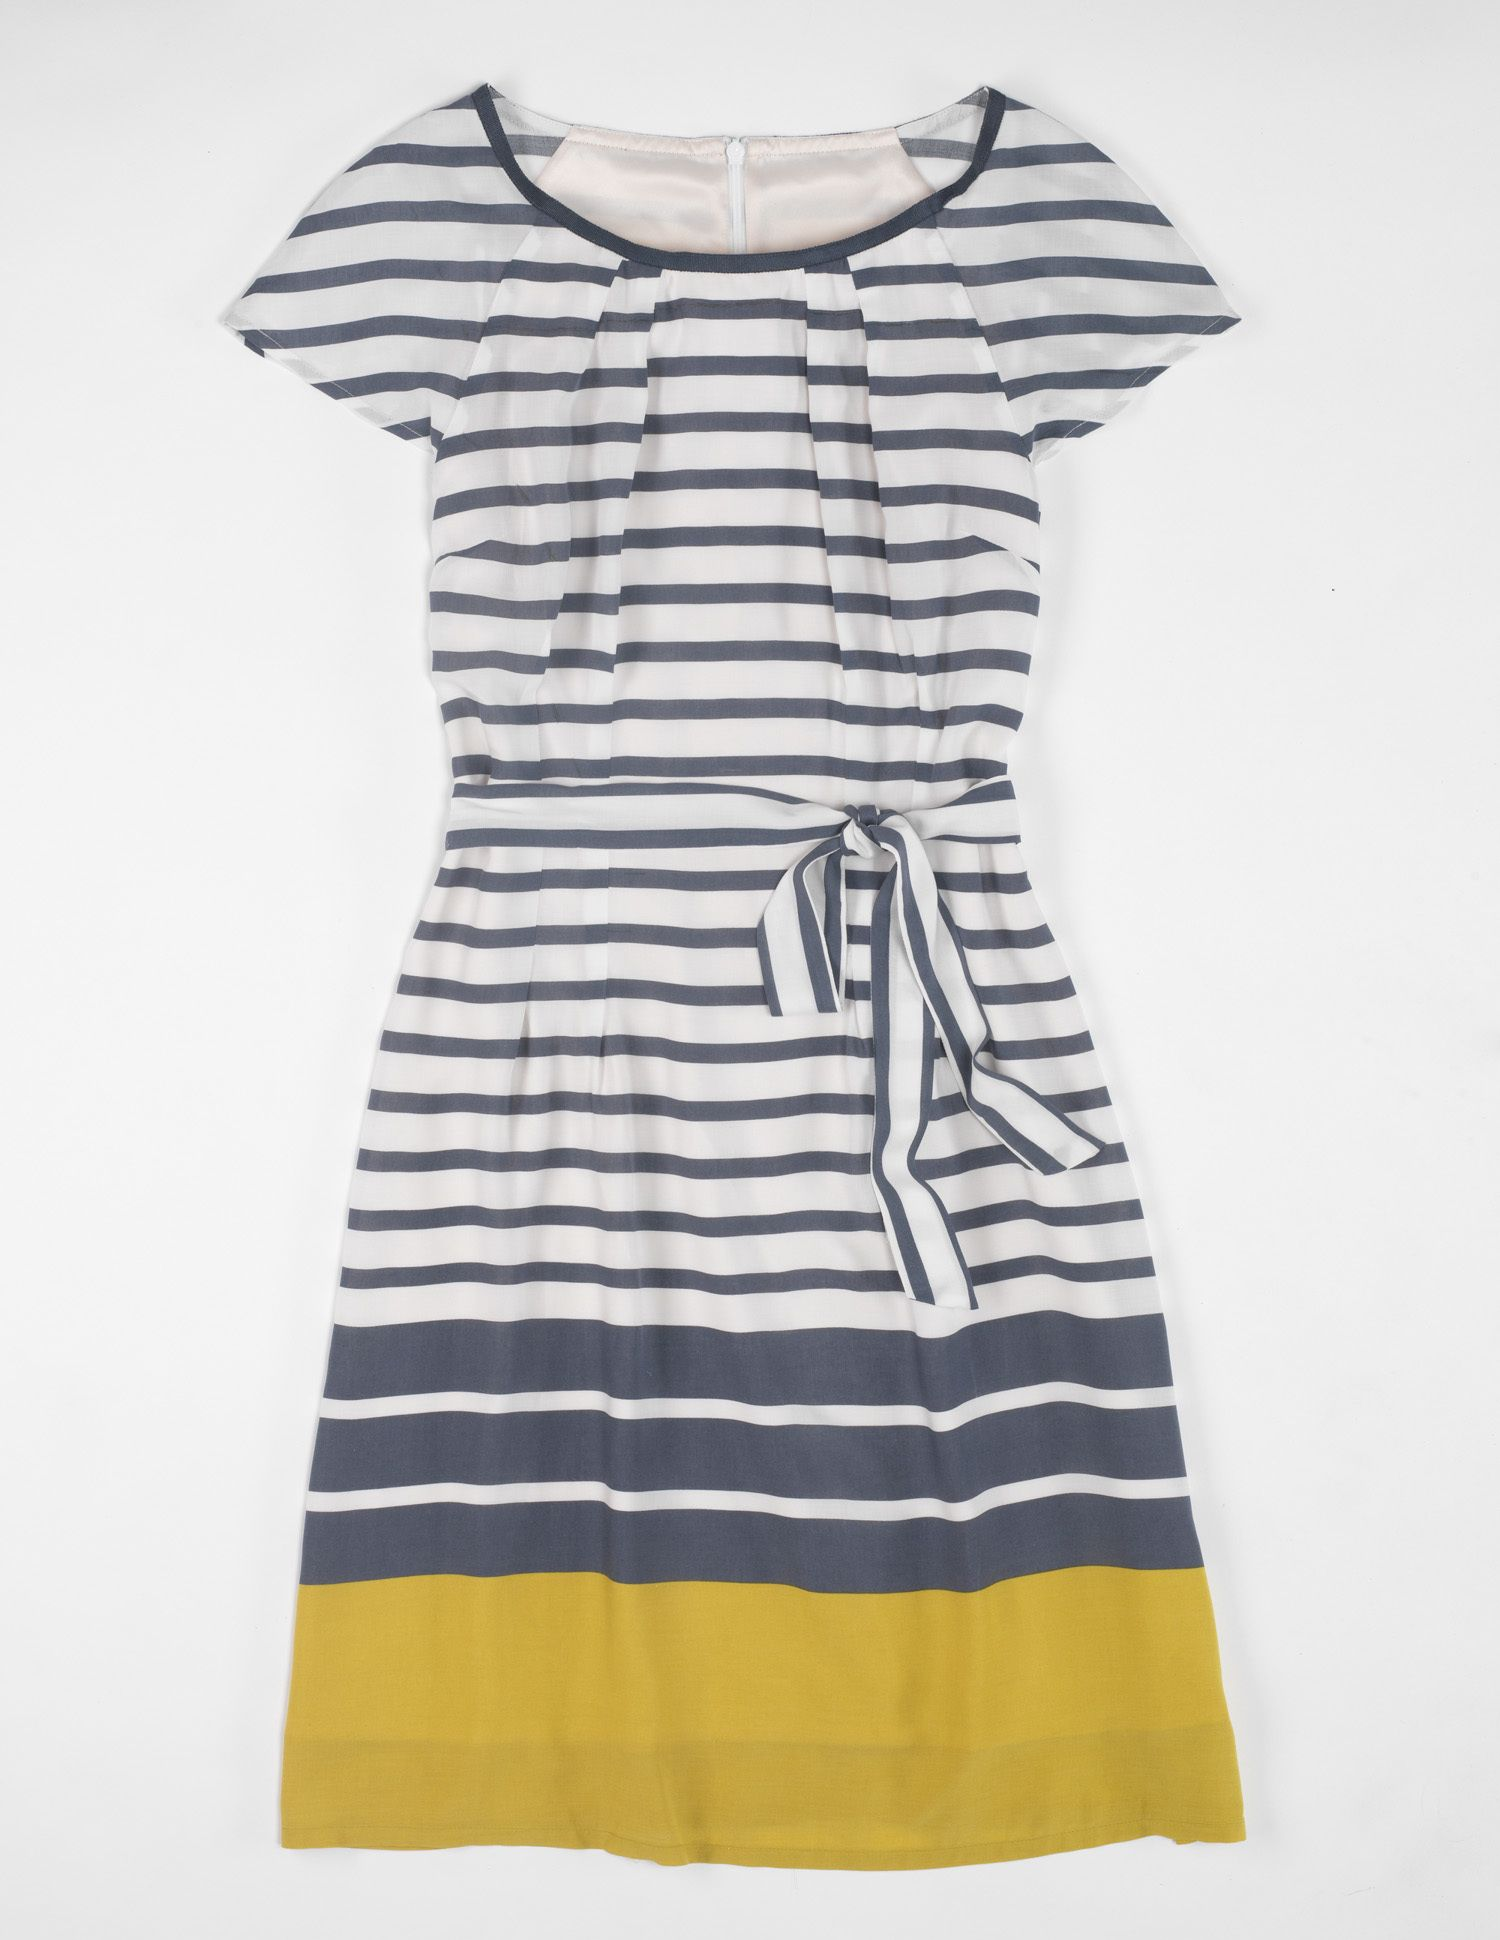 Stitch fix stylist this dress is great Would be a good spring